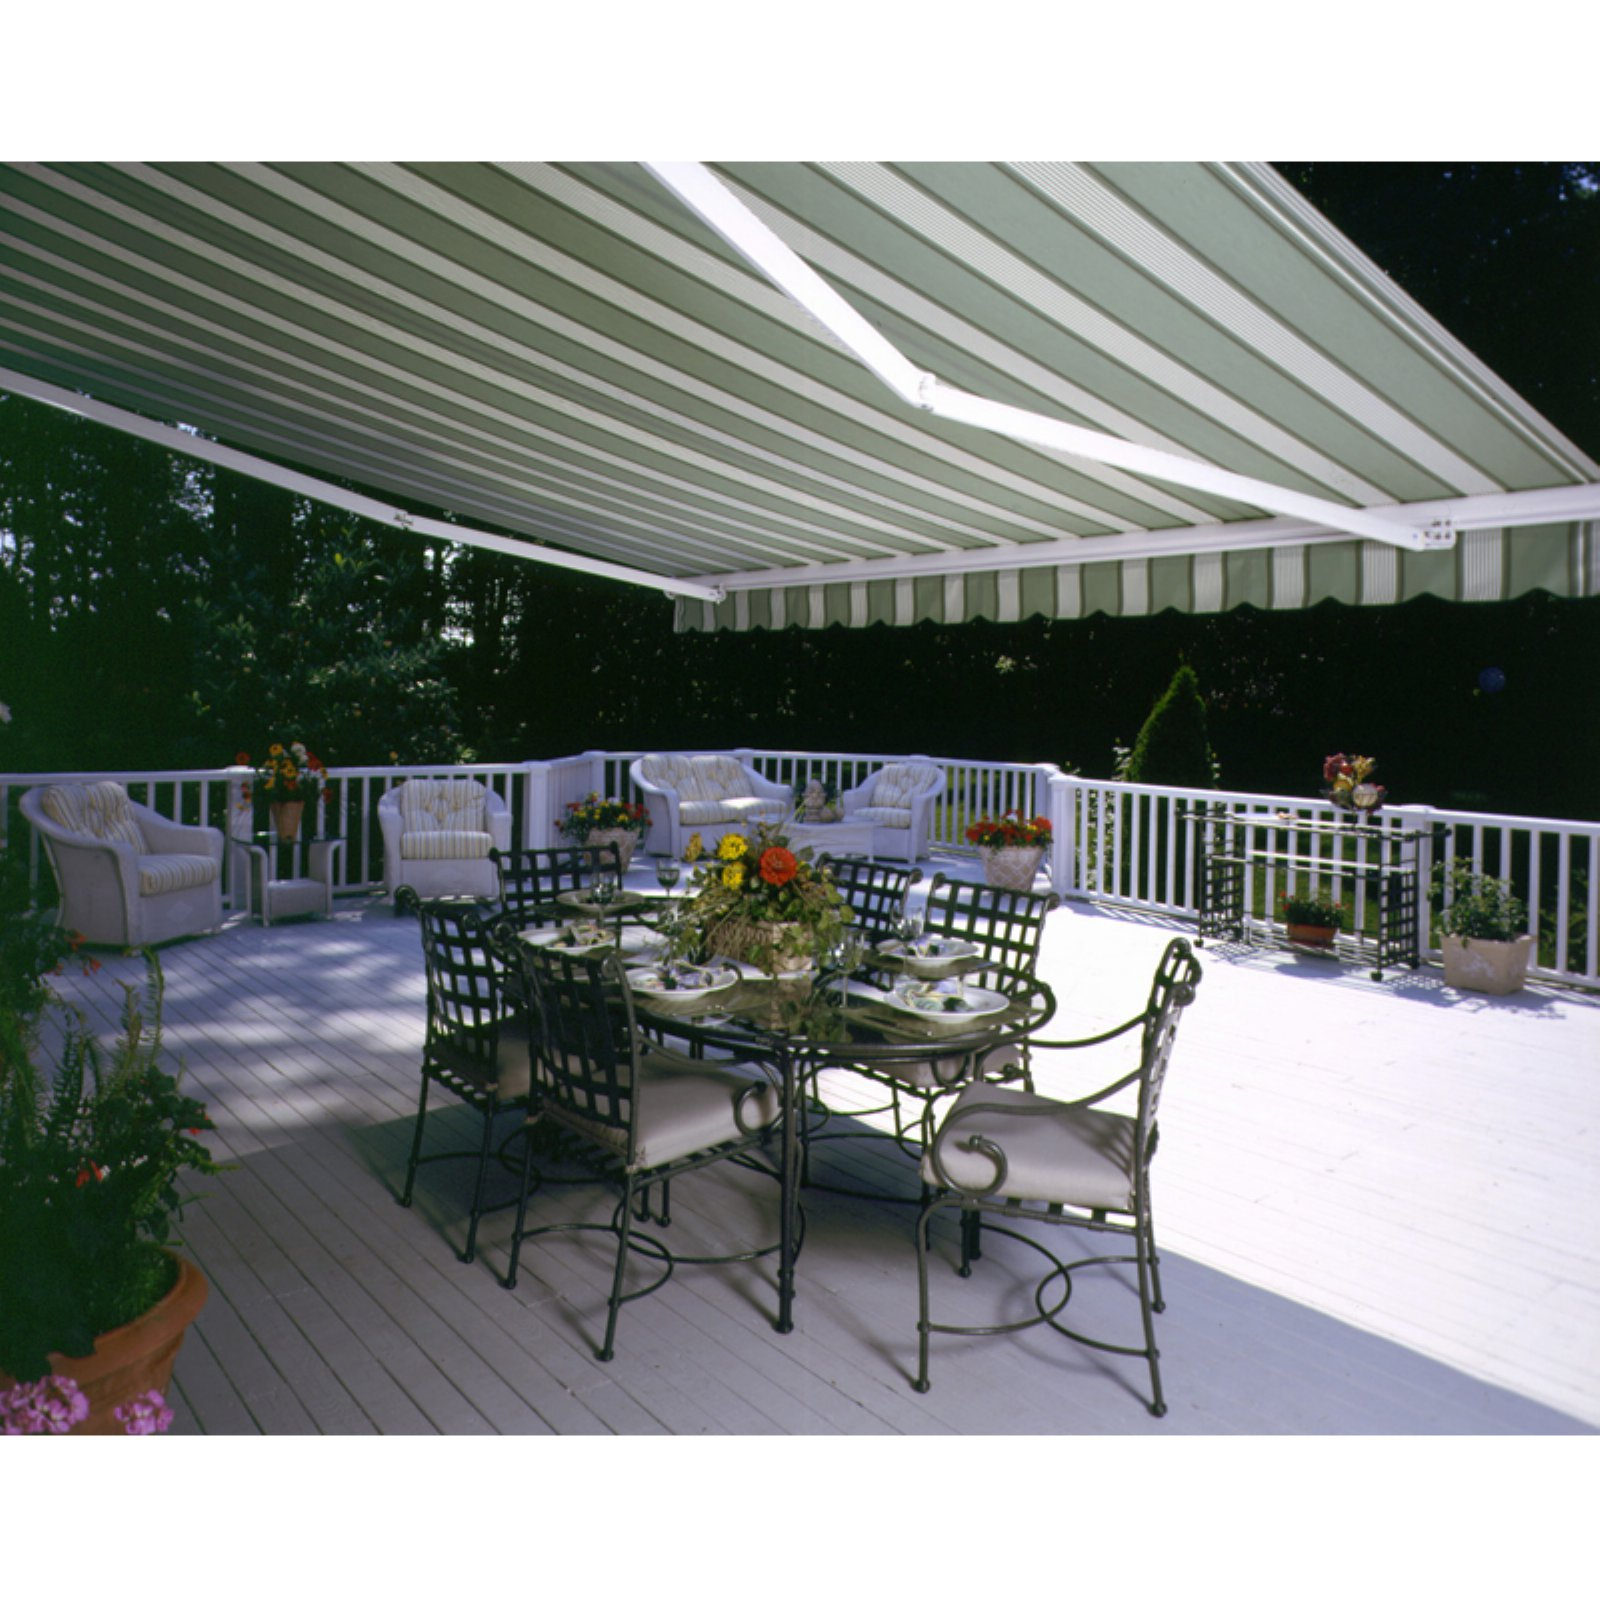 awning folding ltedzwi motorized lateral arm ft retractable the model awnings retractableawnings palermo com products